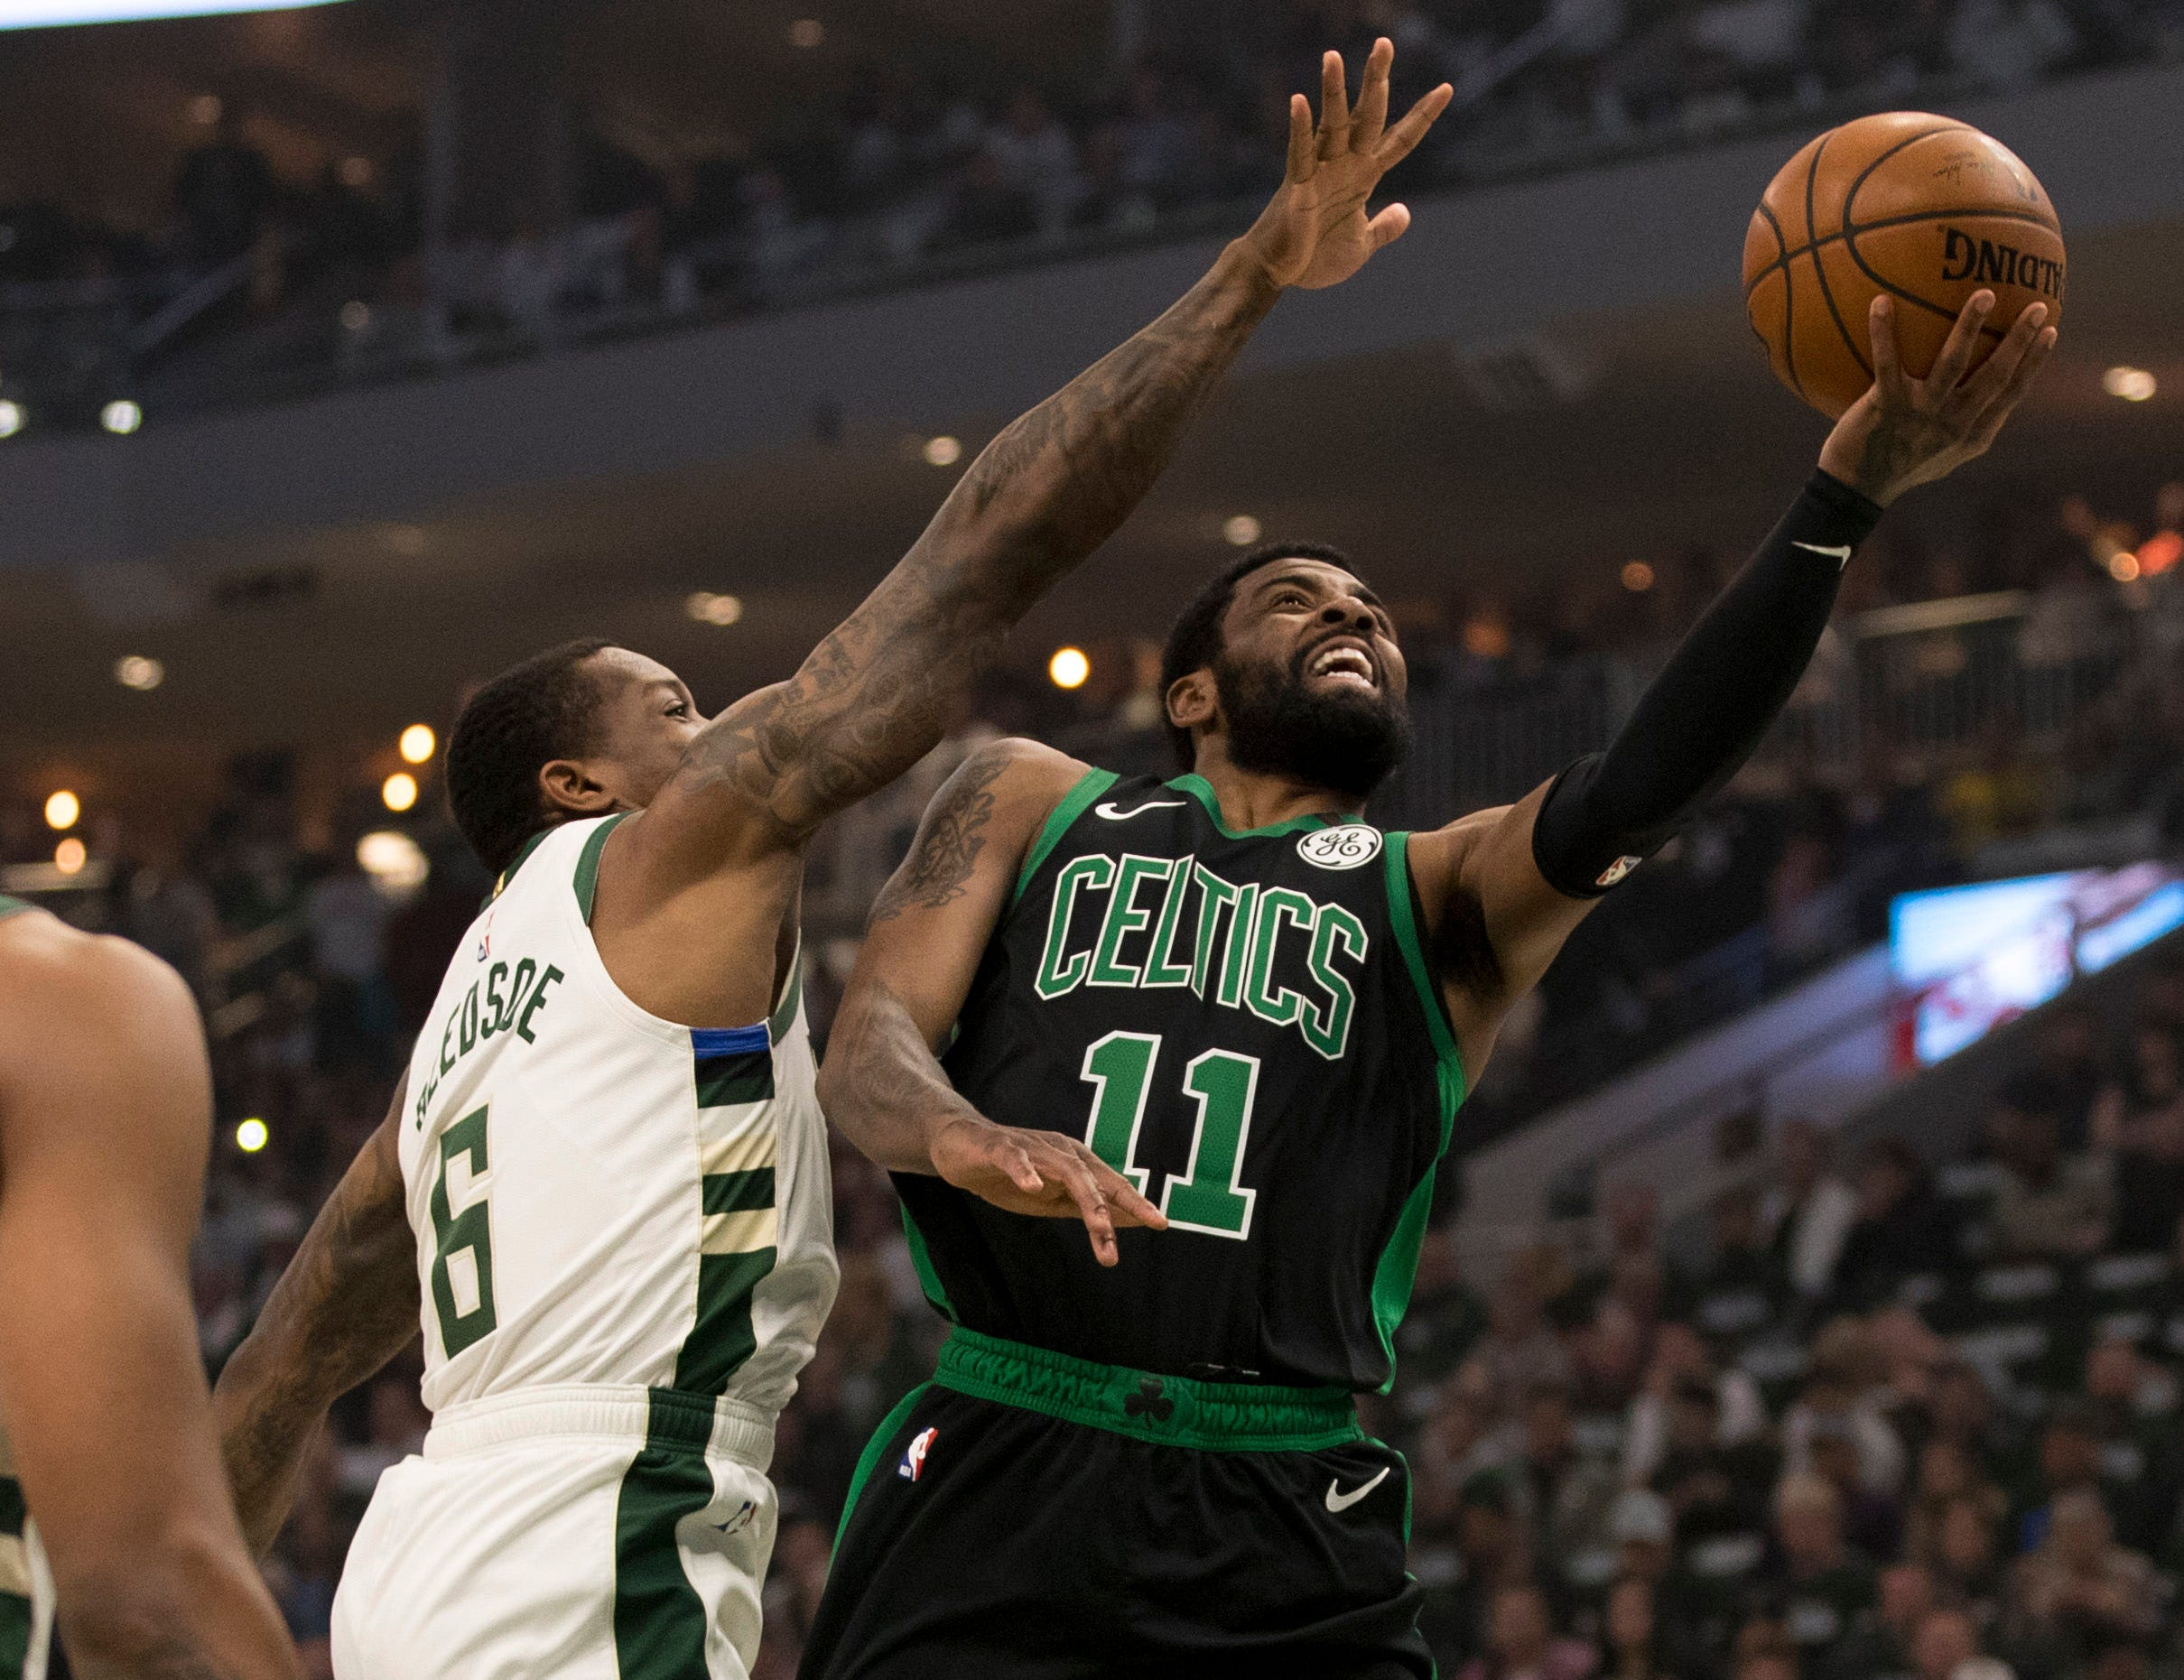 April 28: Celtics guard Kyrie Irving (11) drives to the hop against Bucks defender Eric Bledsoe (6) during Game 1 in Milwaukee.